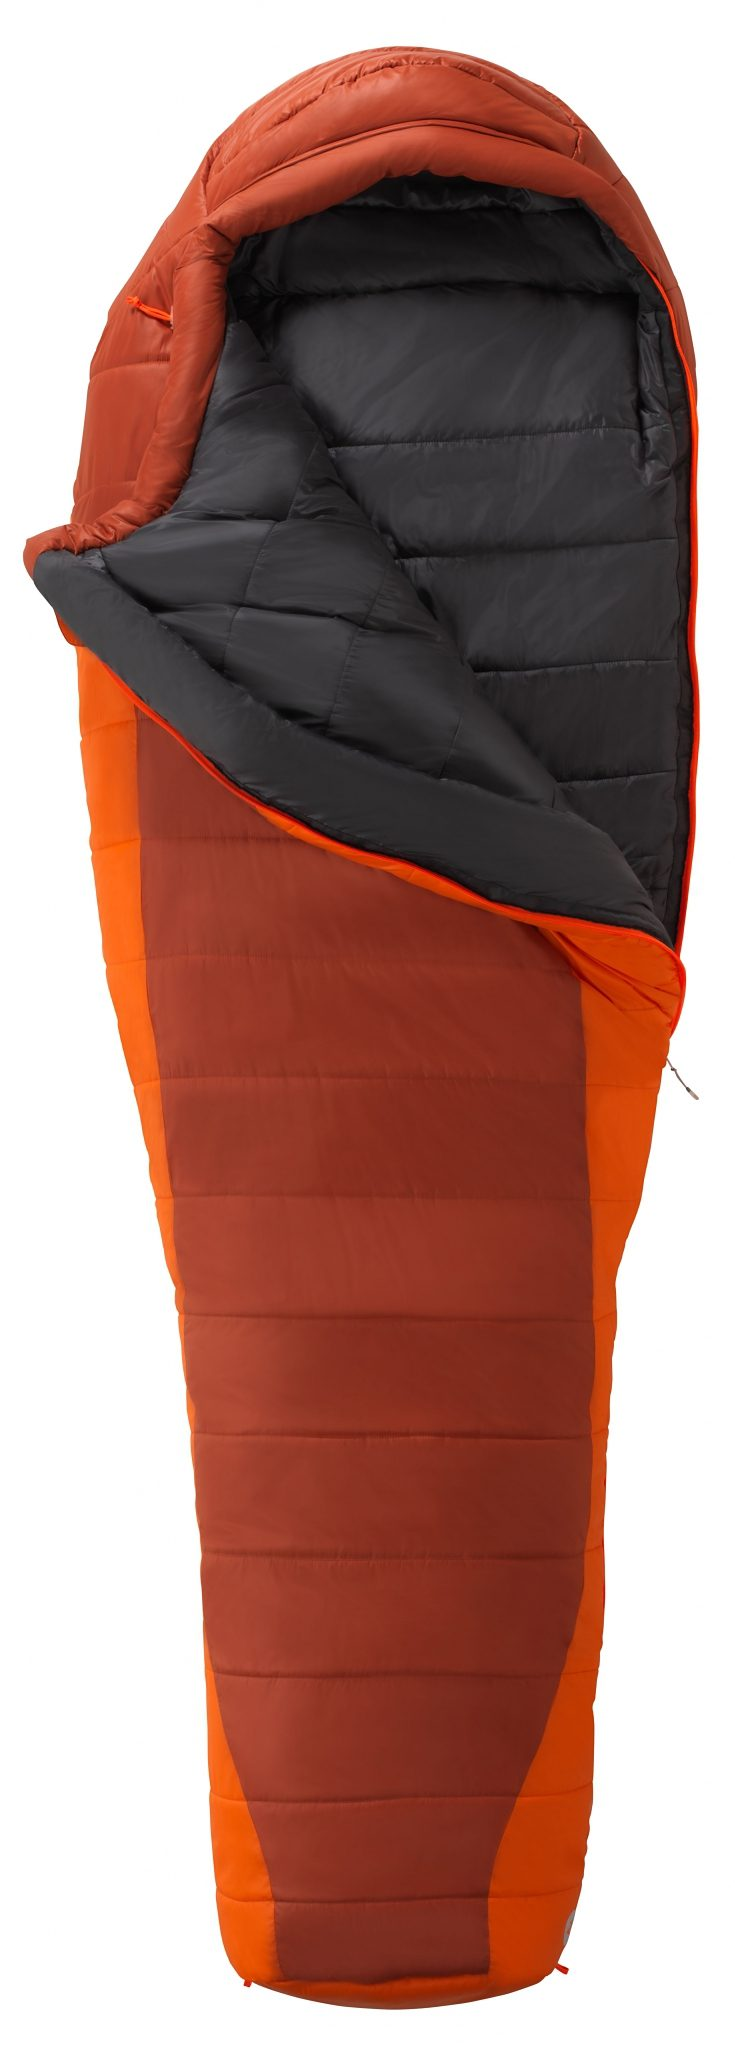 Marmot Schlafsack »Cloudbreak 0 Sleeping Bag Long«